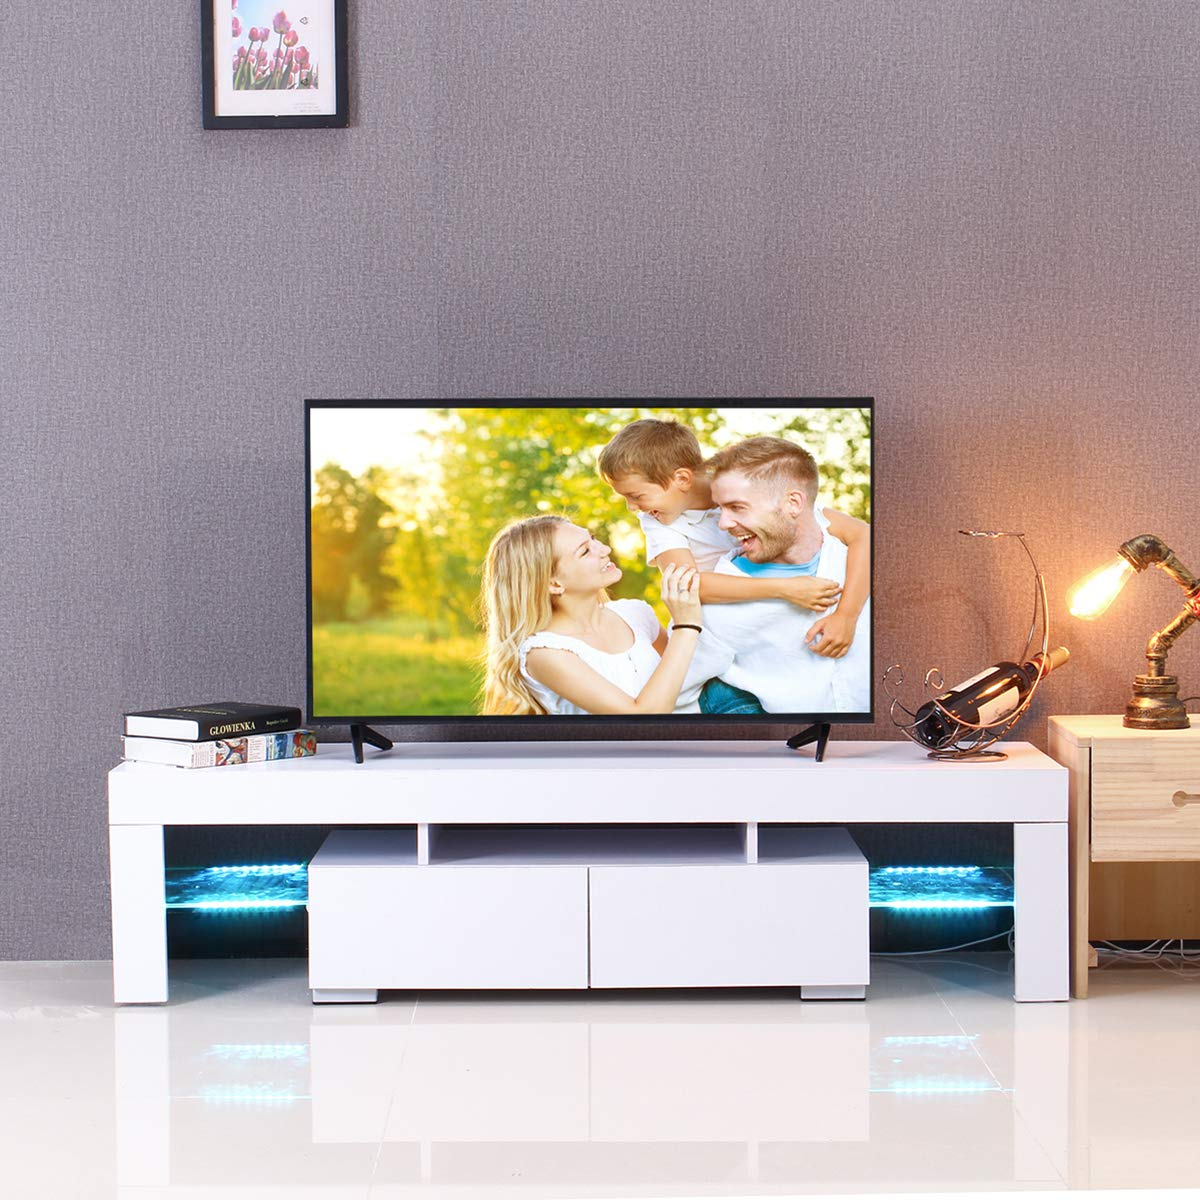 KINGSO TV Stand with LED Lights, Modern TV Stand with Open Storage Shelf Drawers, High Gloss TV Stand Living Room Furniture White